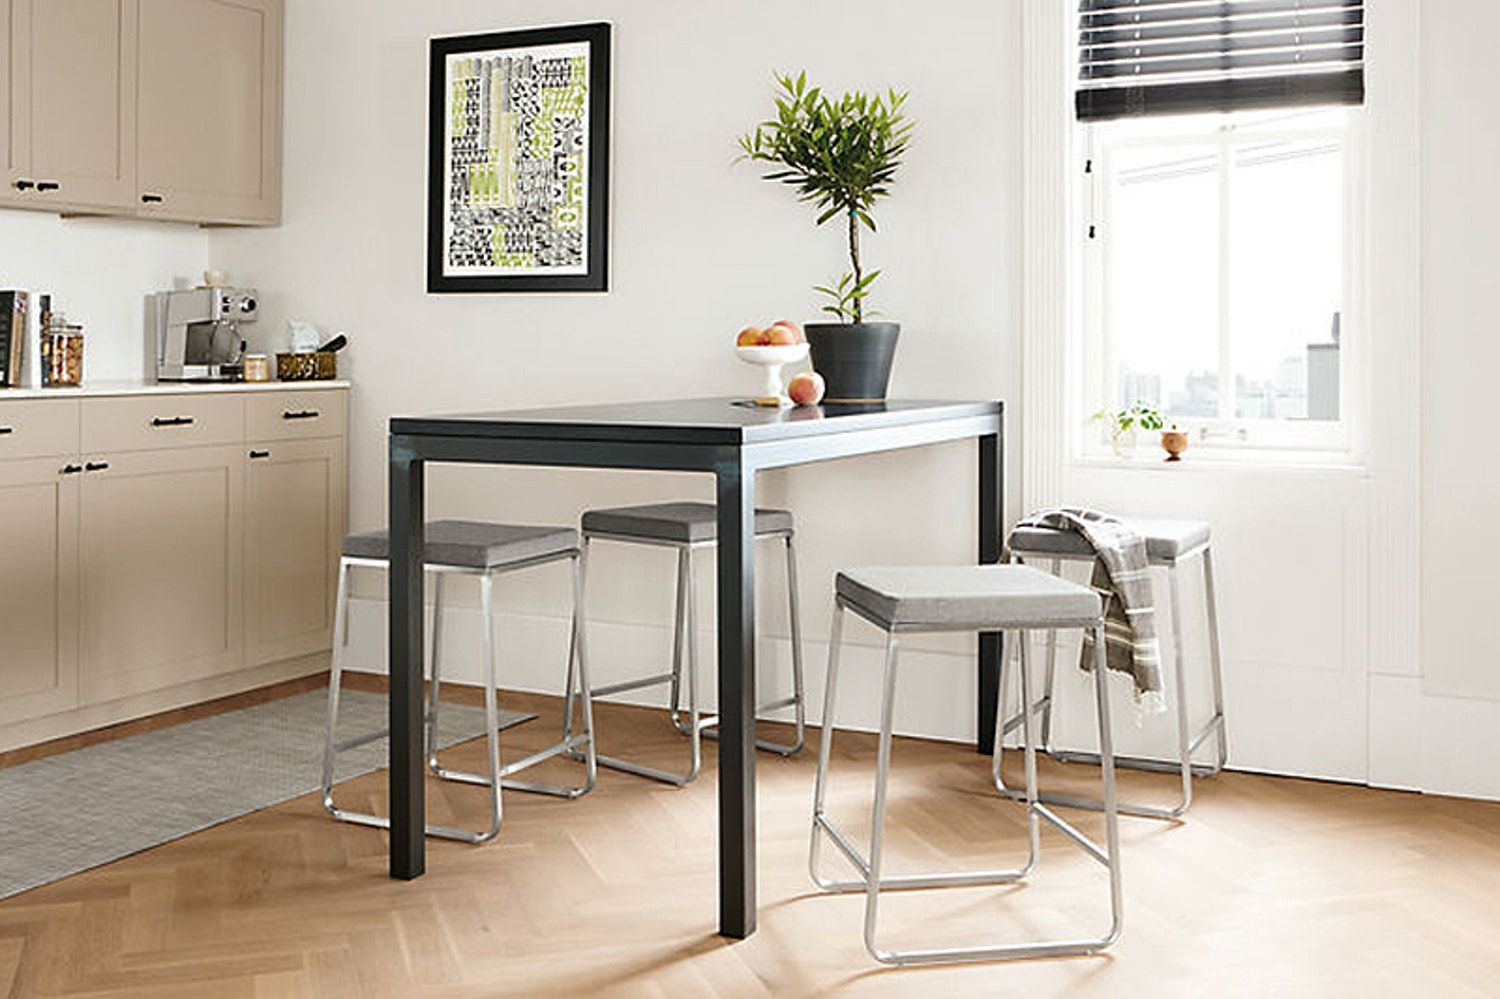 The 9 Best Sources for Outfitting Your Small Space Small